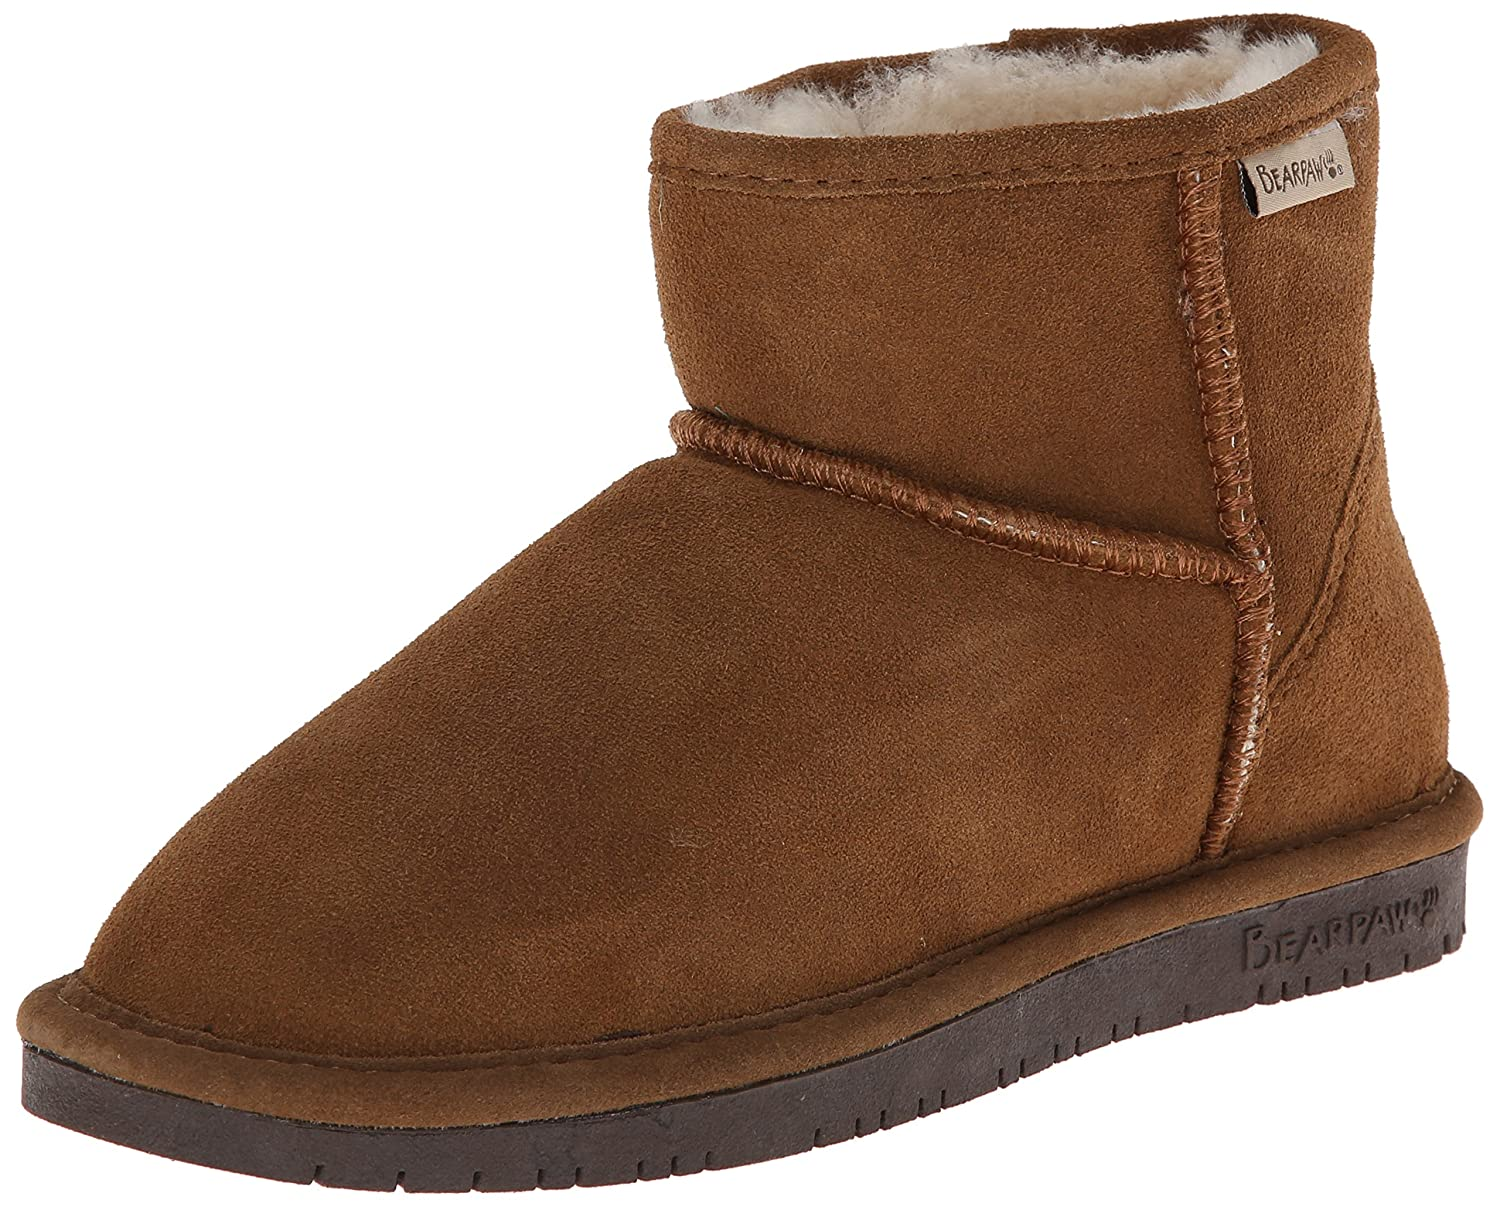 BEARPAW Demi Fashion Boot B00IXAMOD0 5 B(M) US|Hickory/Choco